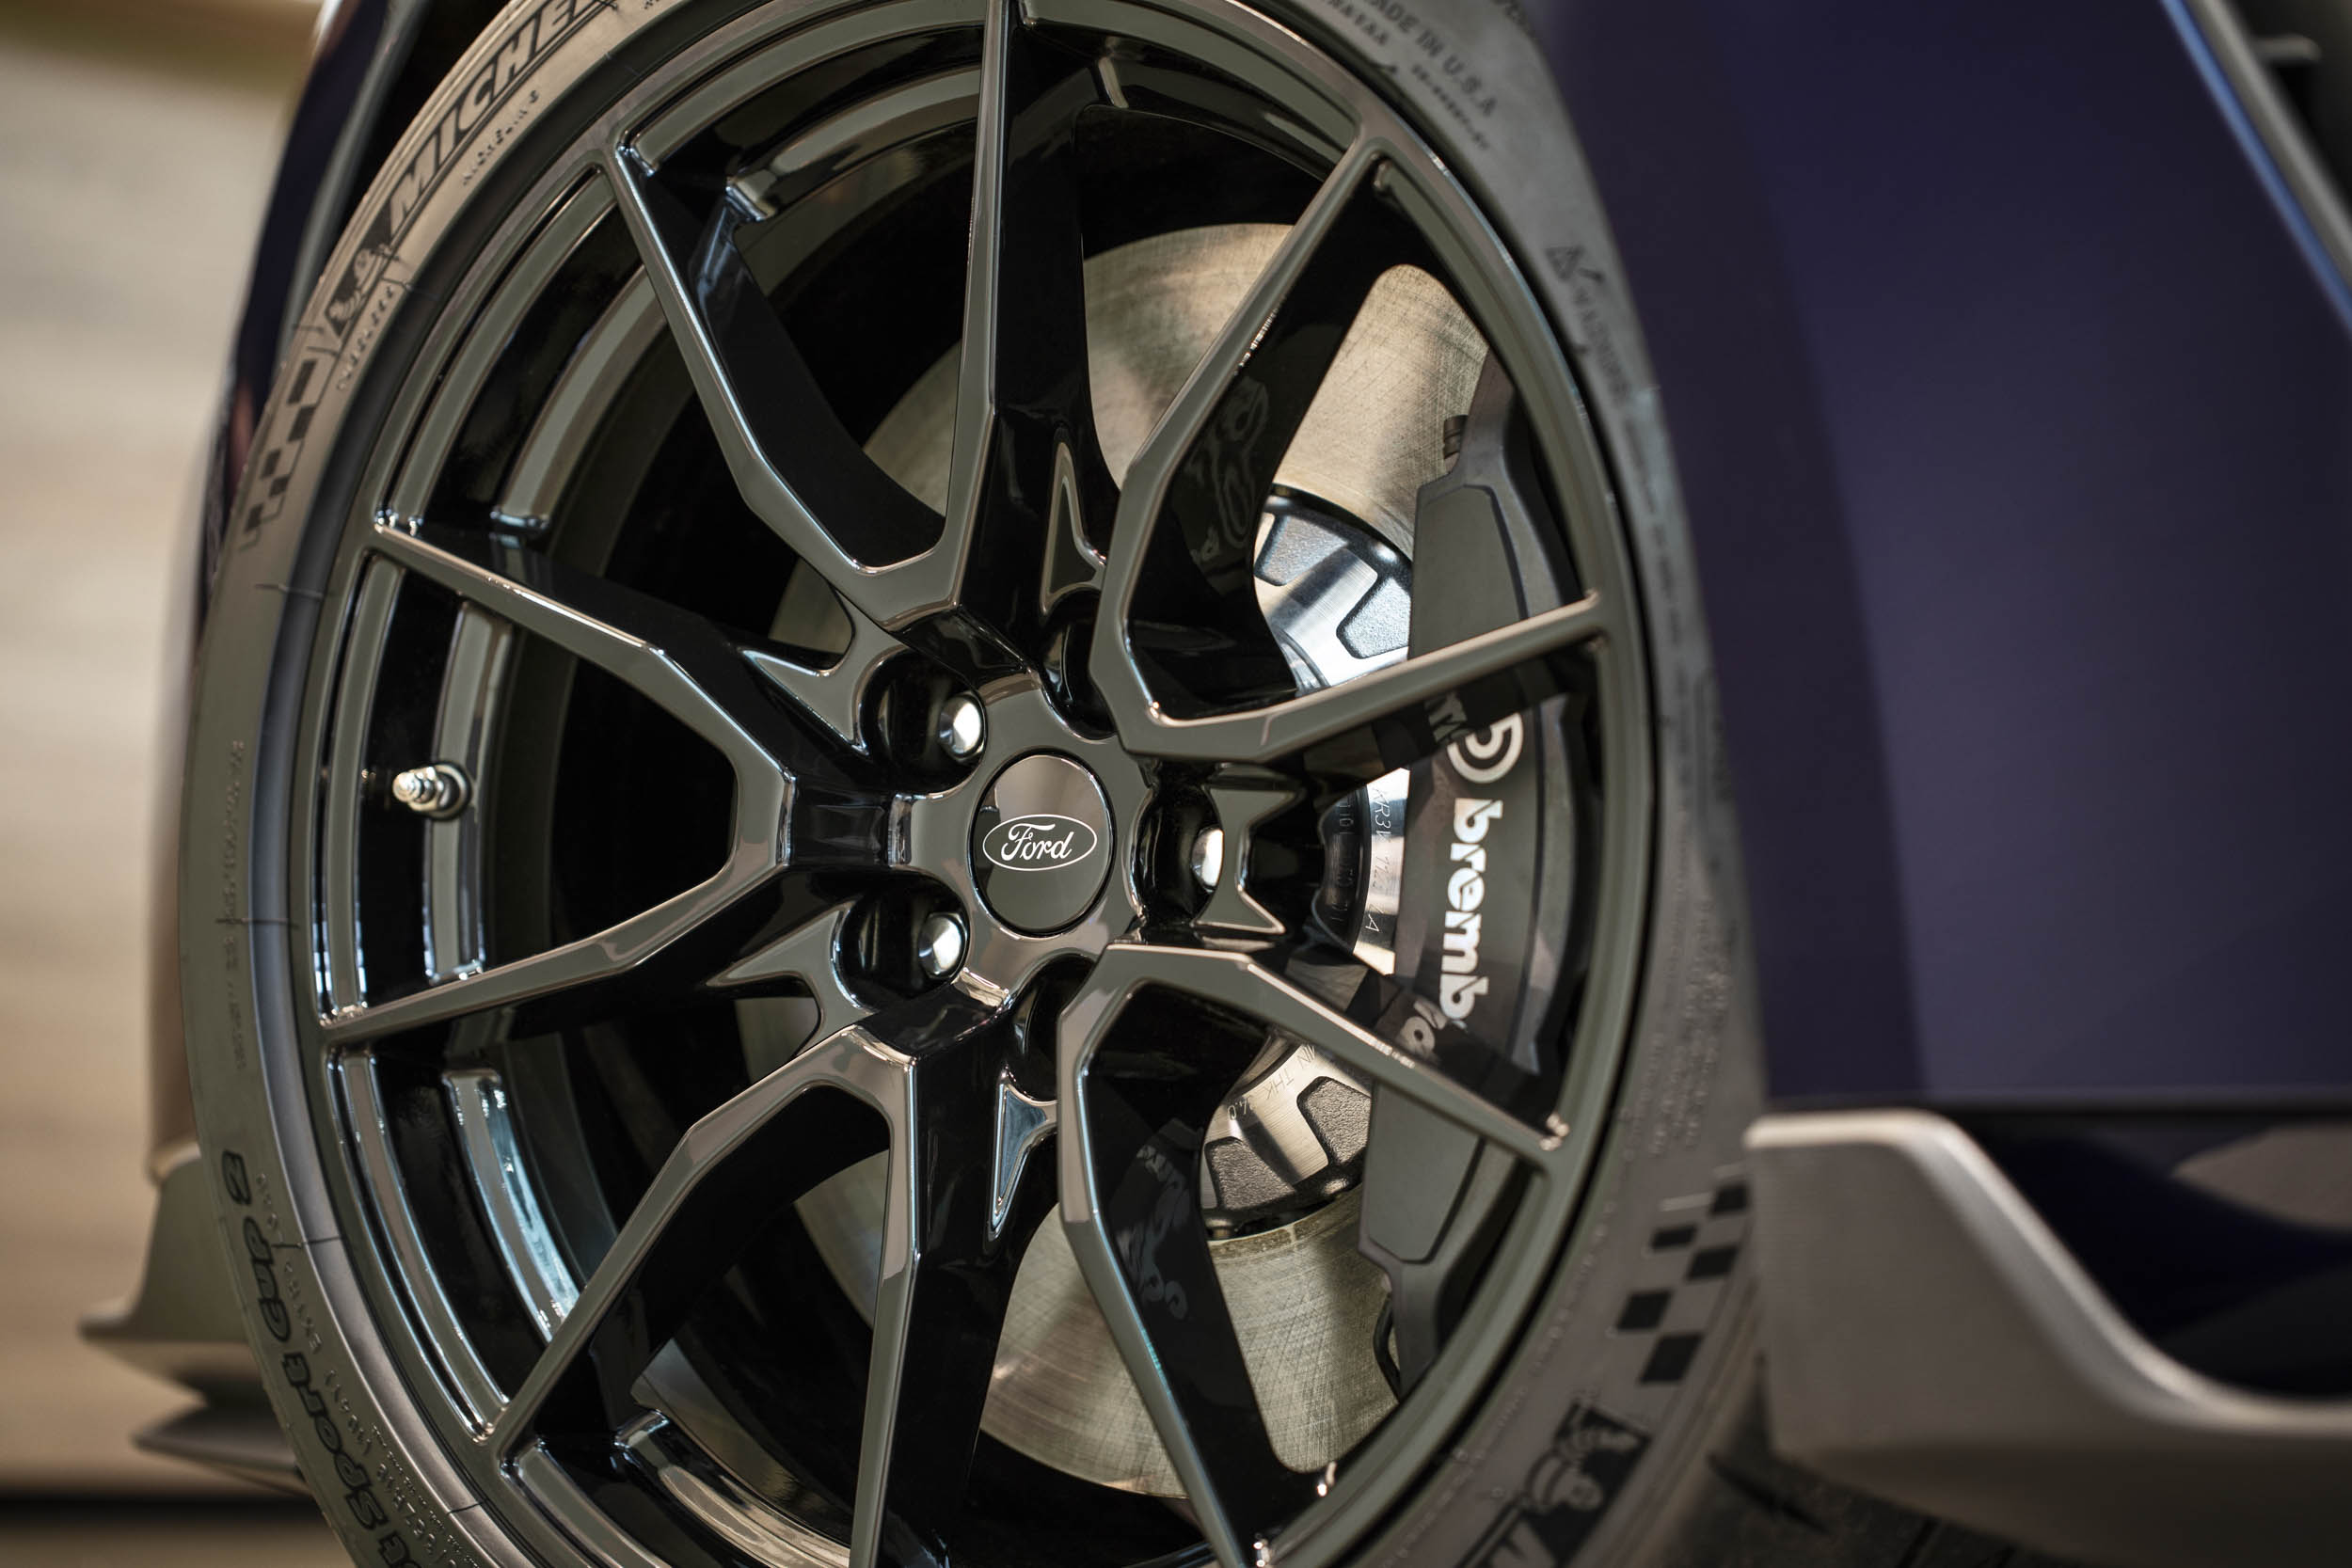 2019 Shelby GT350 wheel detail